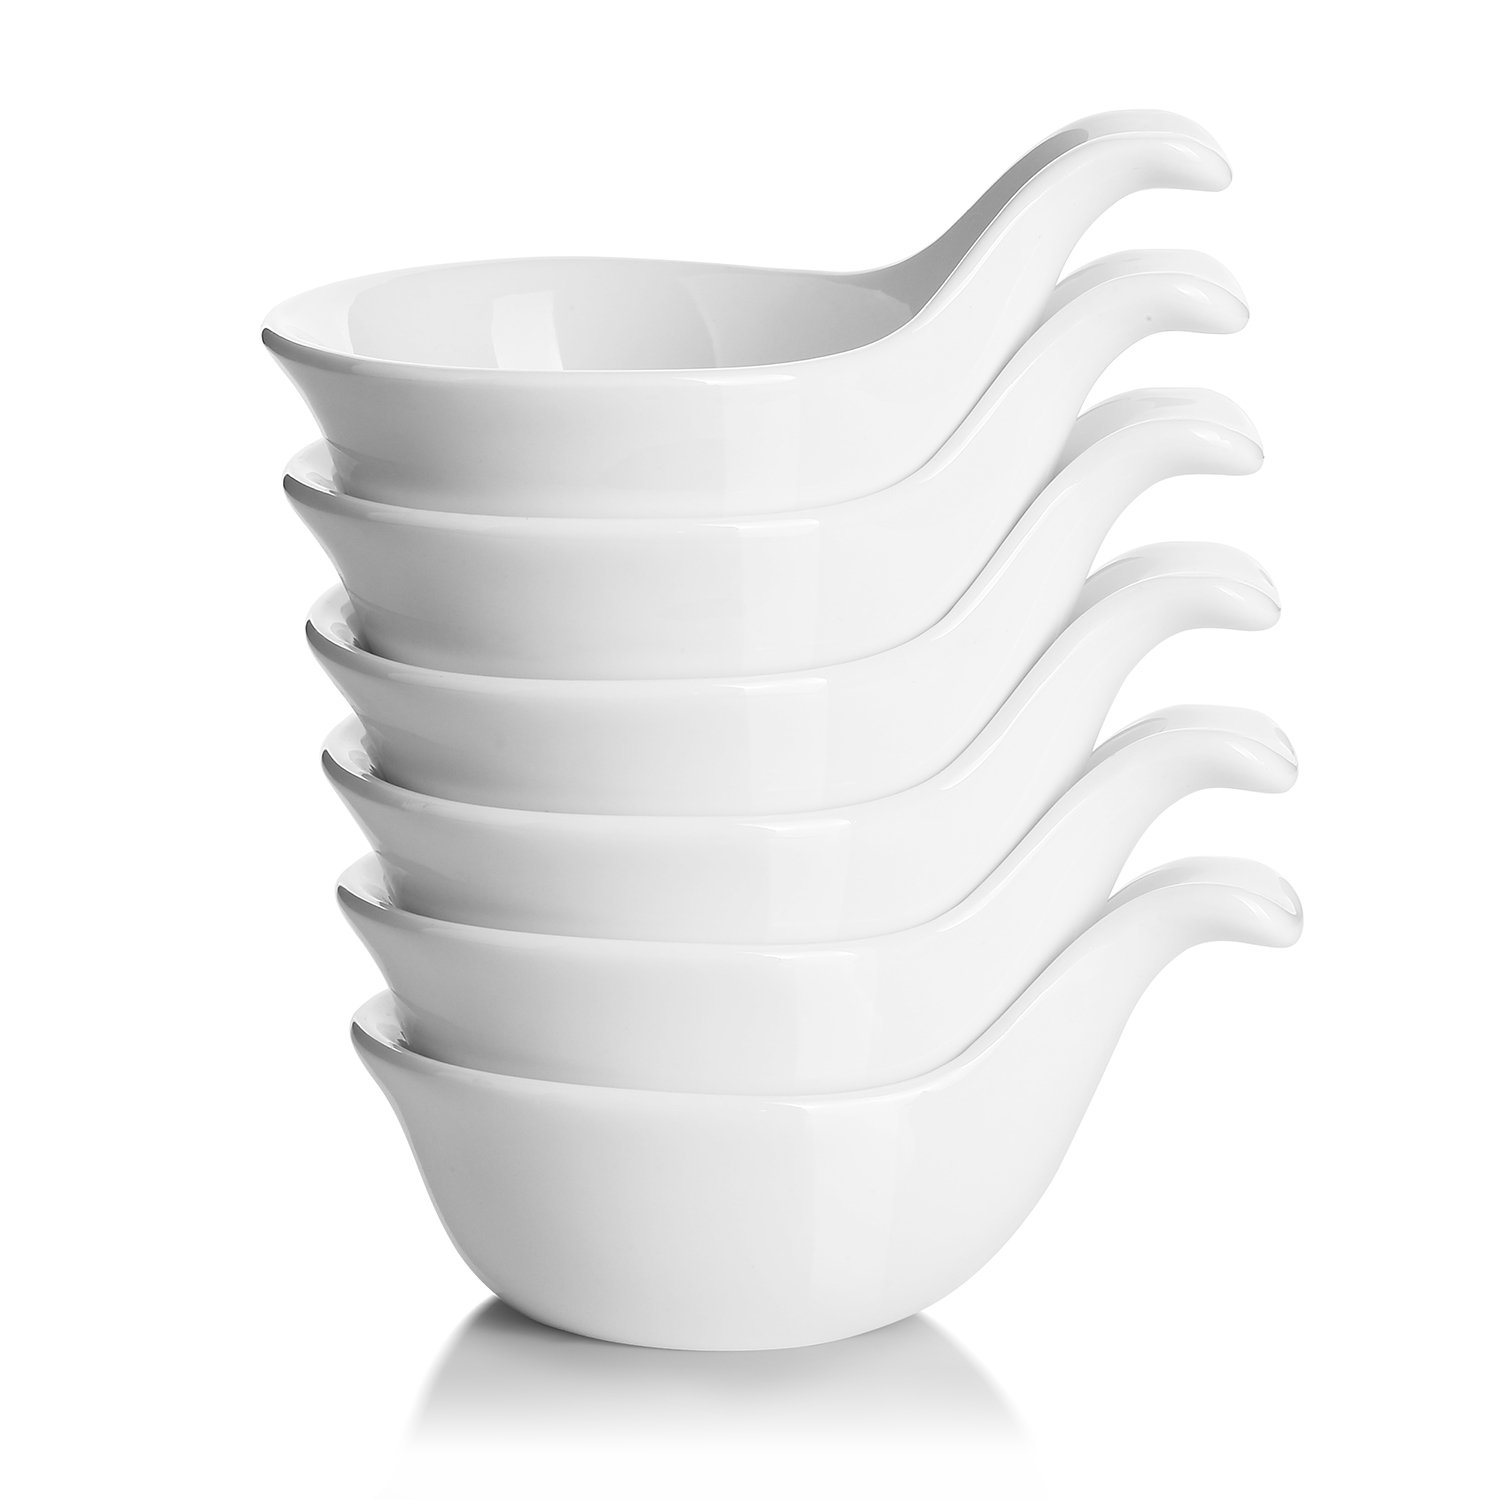 DOWAN Dip Bowl Set, Soy Sauce Dish with Handle, Small Bowls for Side Dish, 3 Oz Deep for Condiment, Ketchup, Appetizer, Ramekin, Individual Server Bowl for Party Dinner BBQ, White